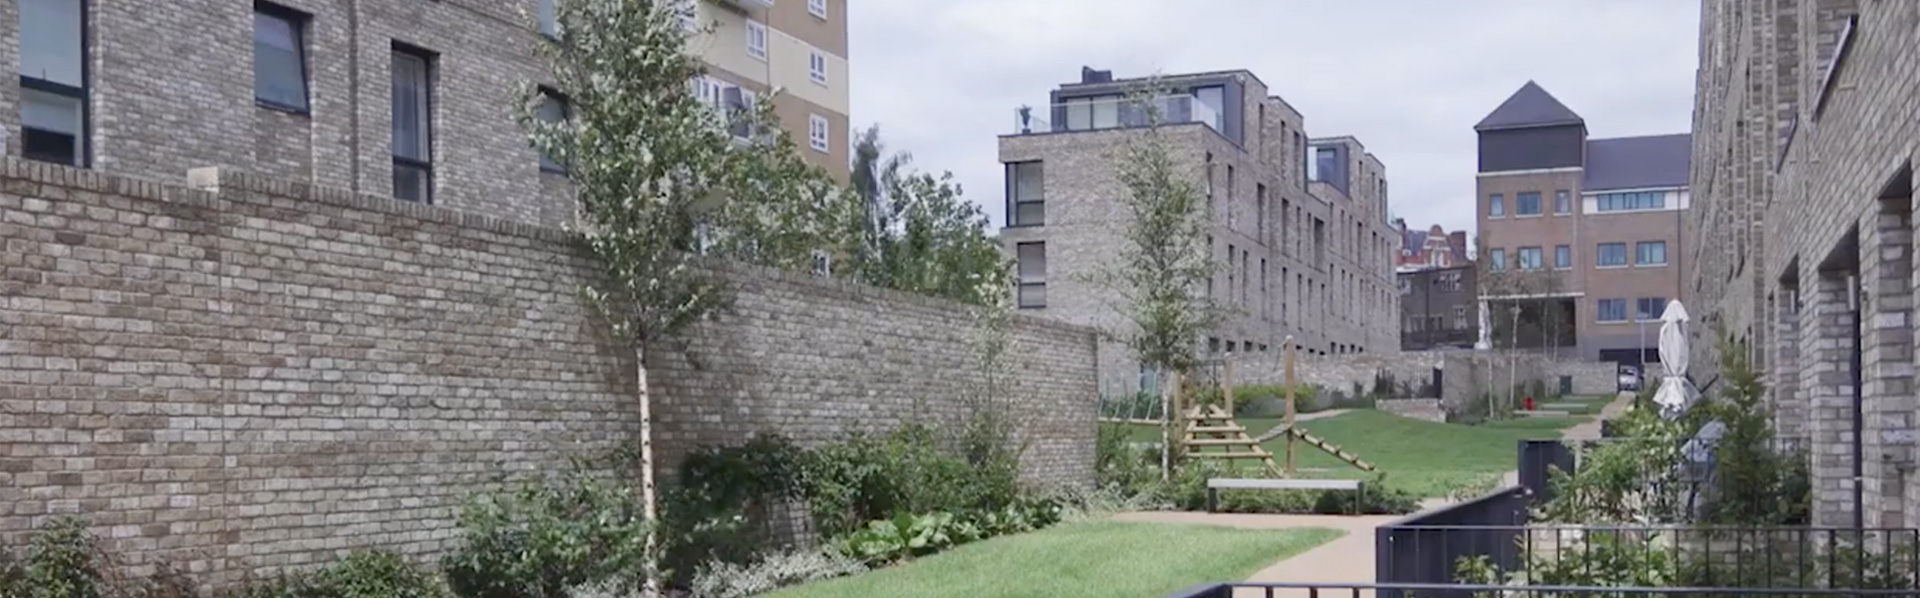 Ely Court 1920x600